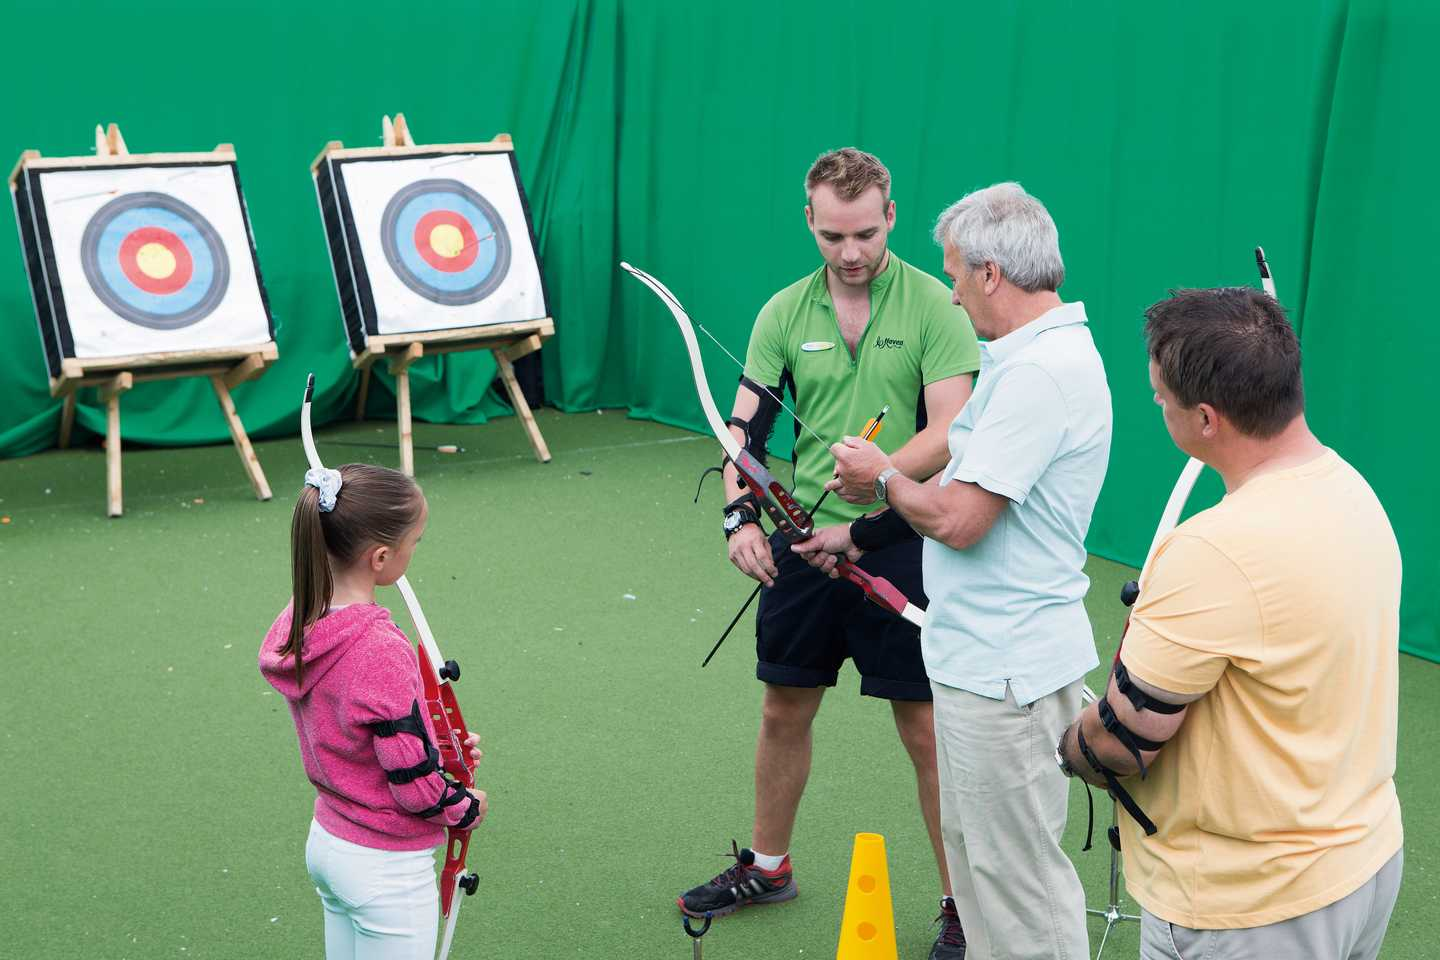 An archery instructor teaching family how to play